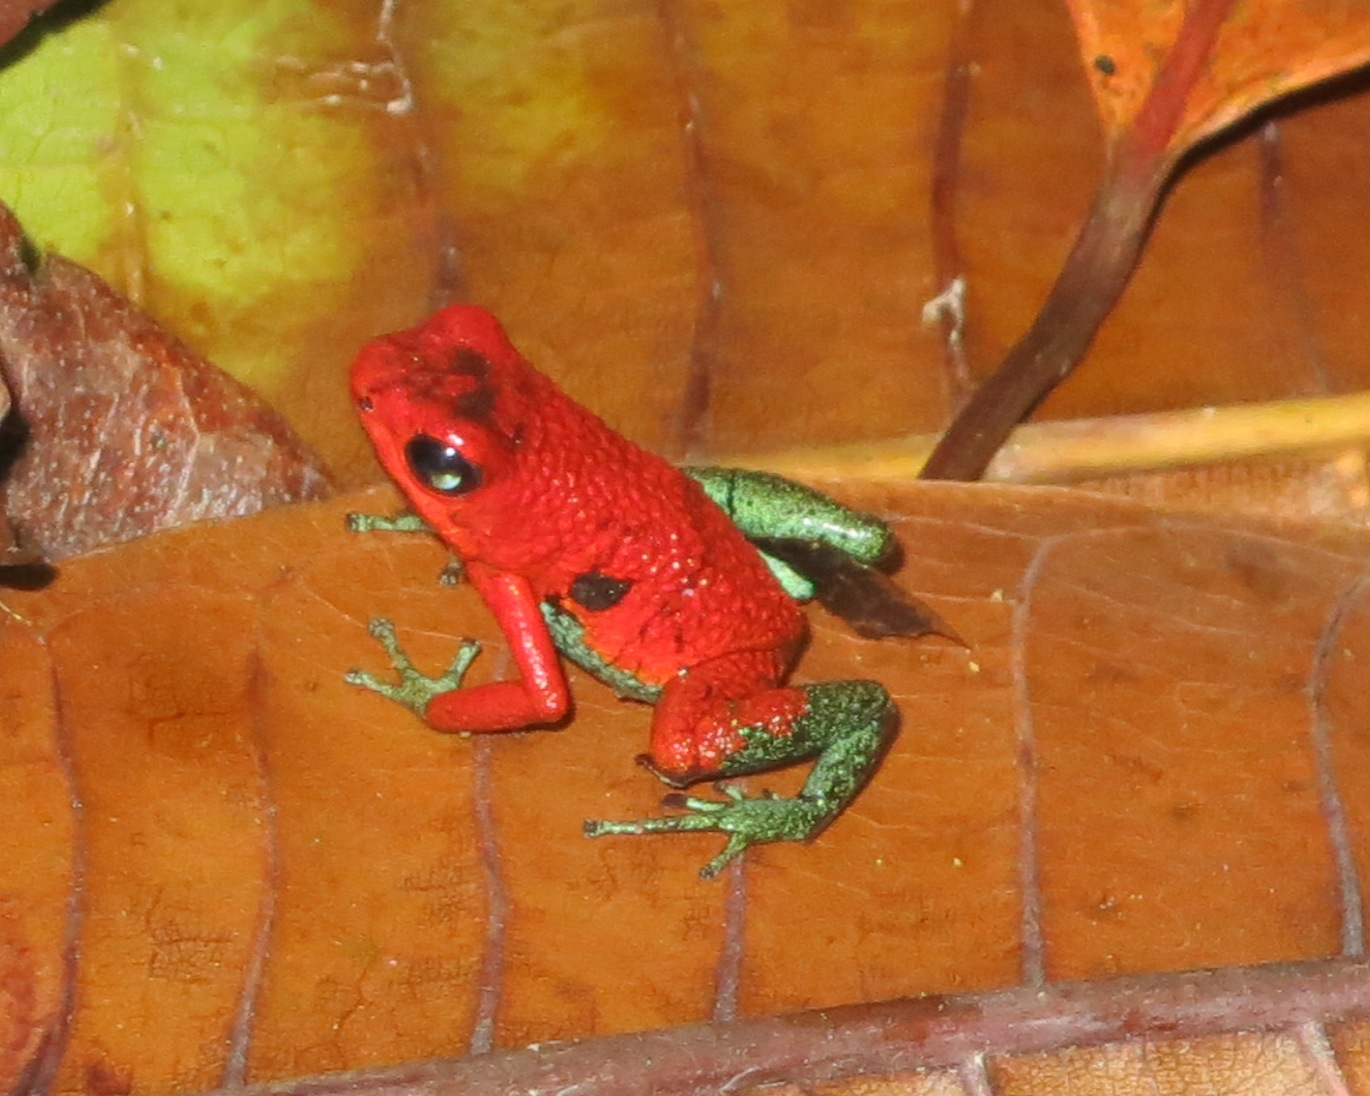 Small, red and green frog with dark eyes sits on a brown leaf.